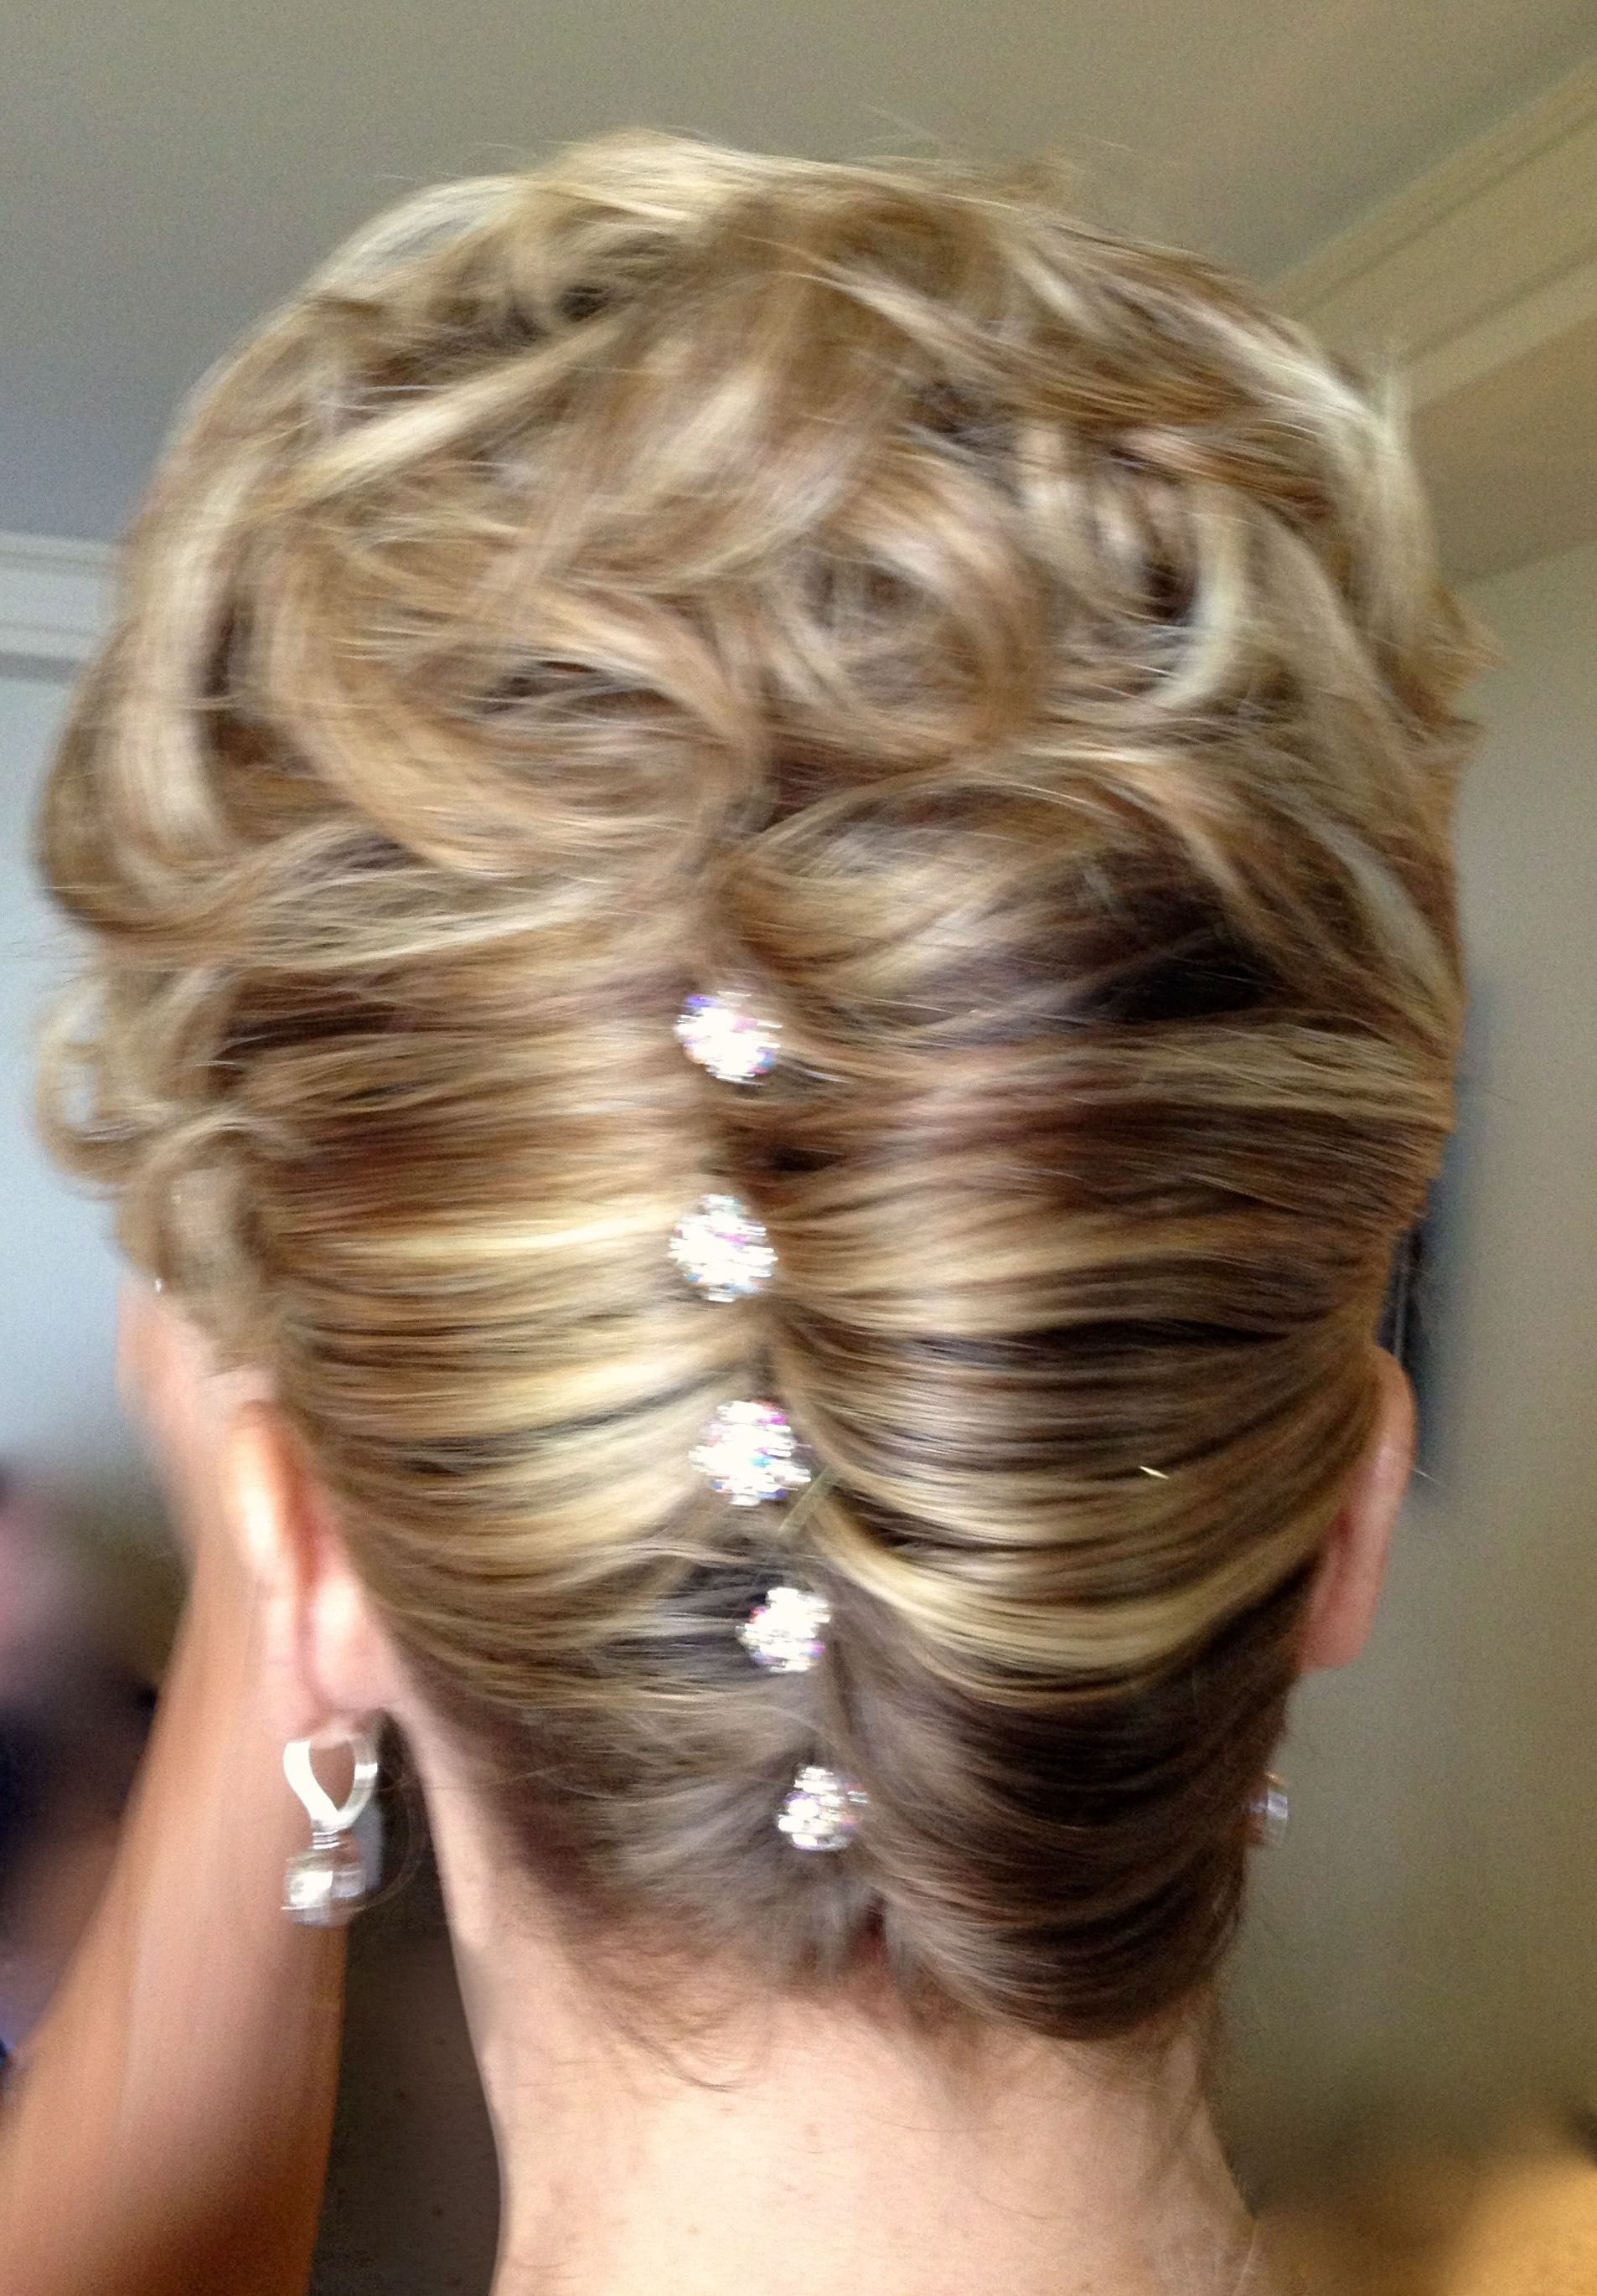 Mother Of The Bride Classic French Twist With A Little Sparkle Pertaining To Current Classic French Twist Prom Hairstyles (View 11 of 20)